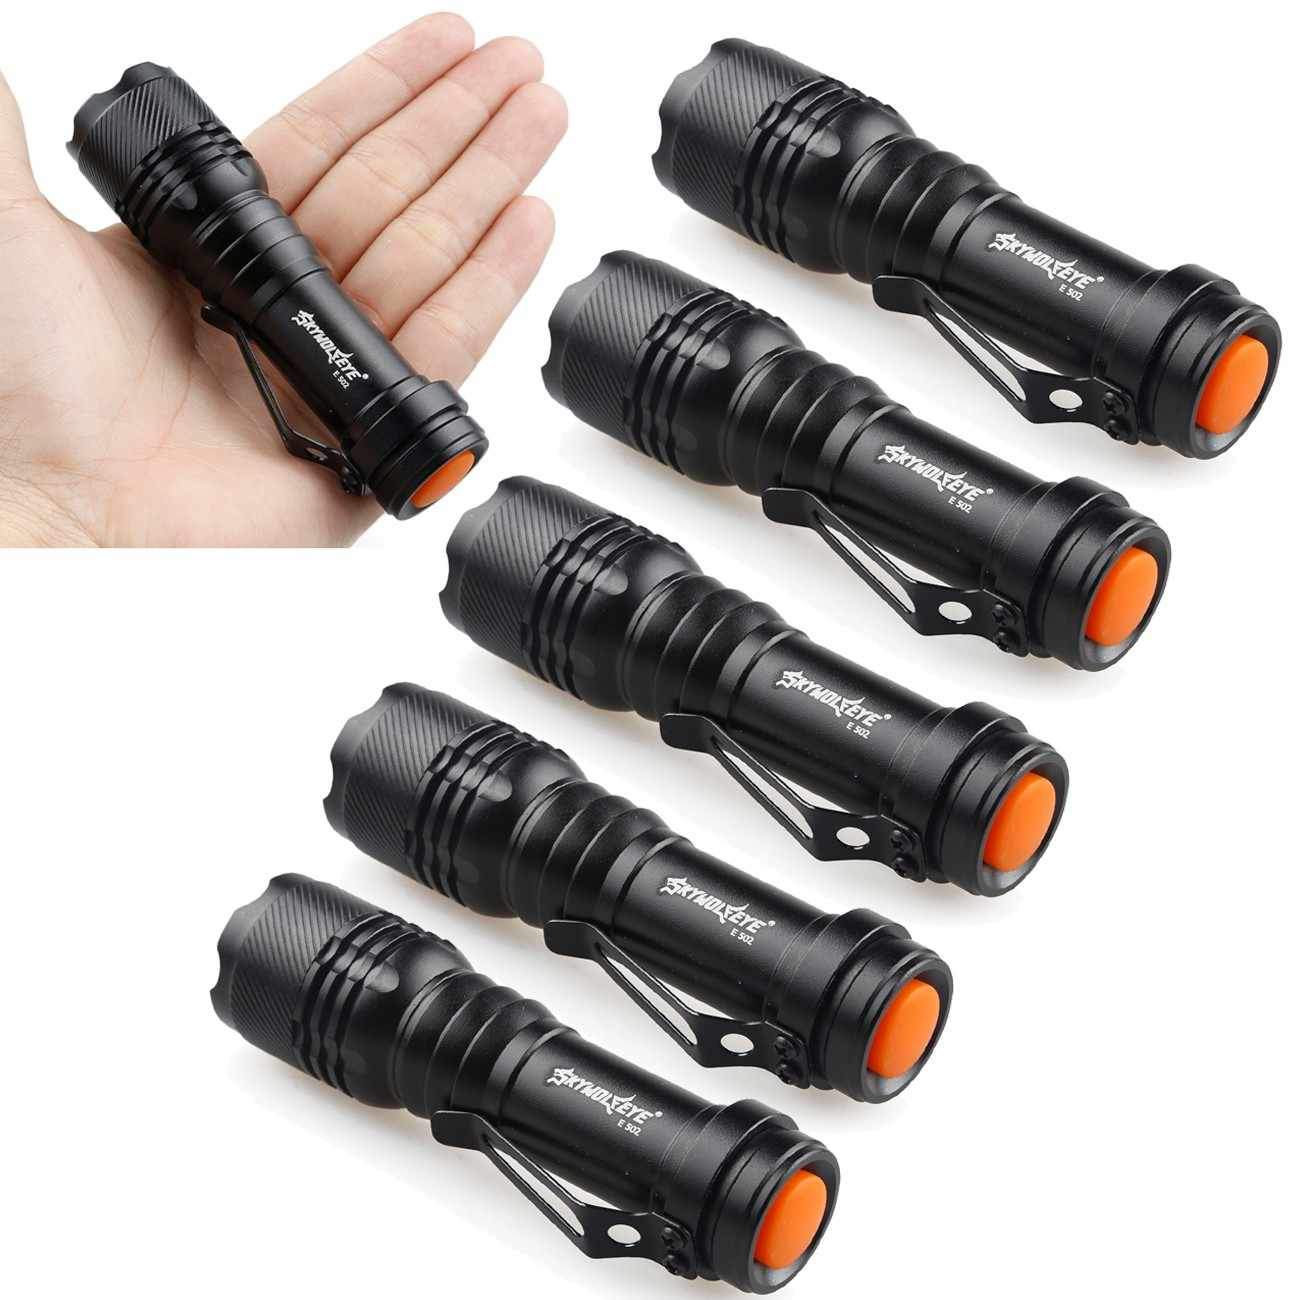 7W 1200lm CREE Q5 LED Zoomable Focus Flashlight Tactical Hiking Torch Lamp Light